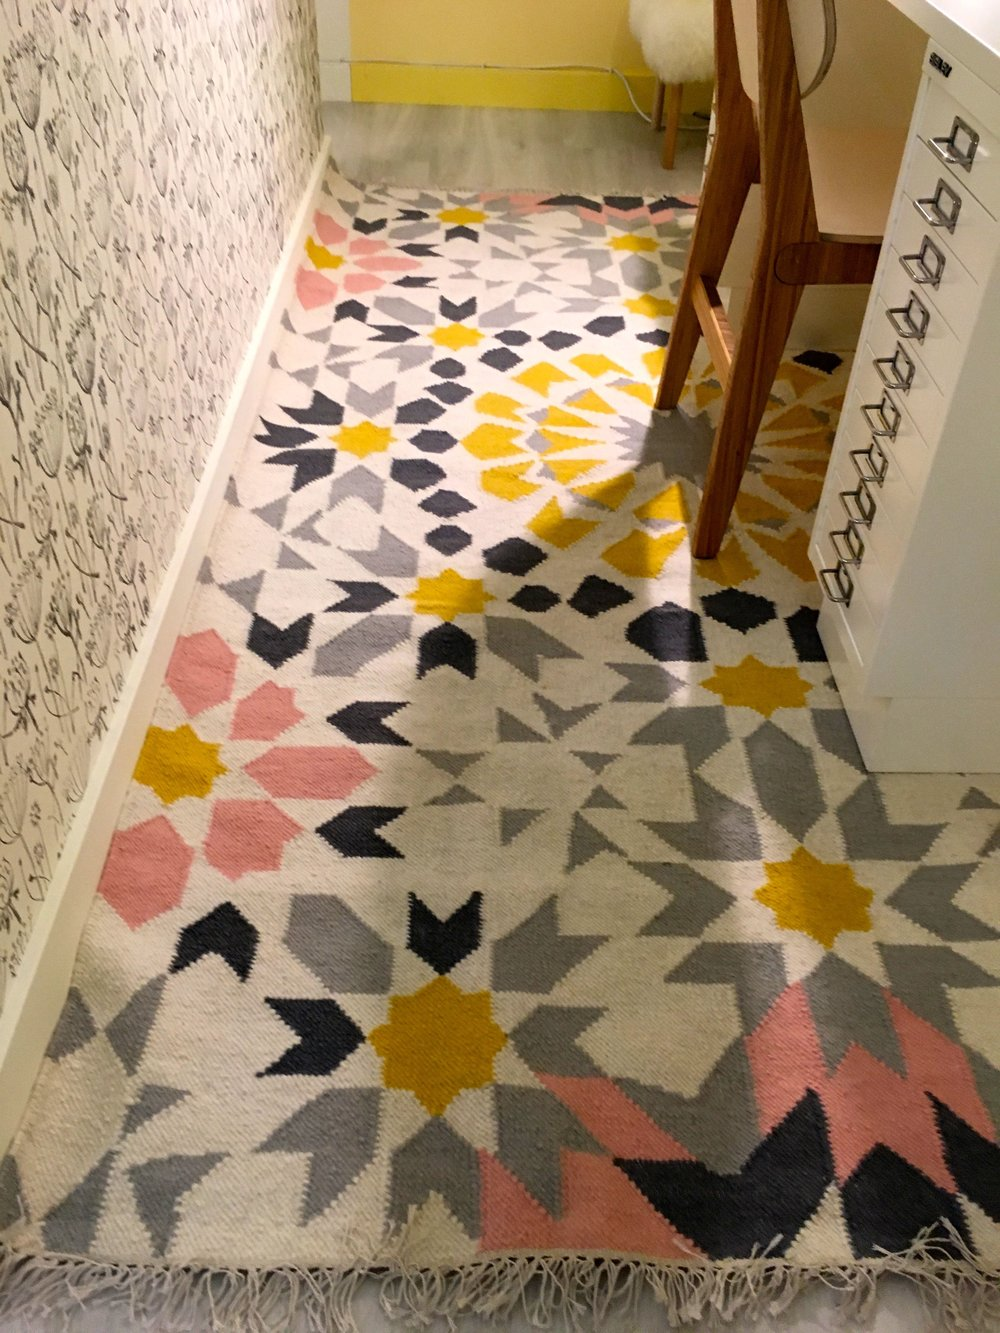 A closer look at that patterned rug at the Ideal Home Show